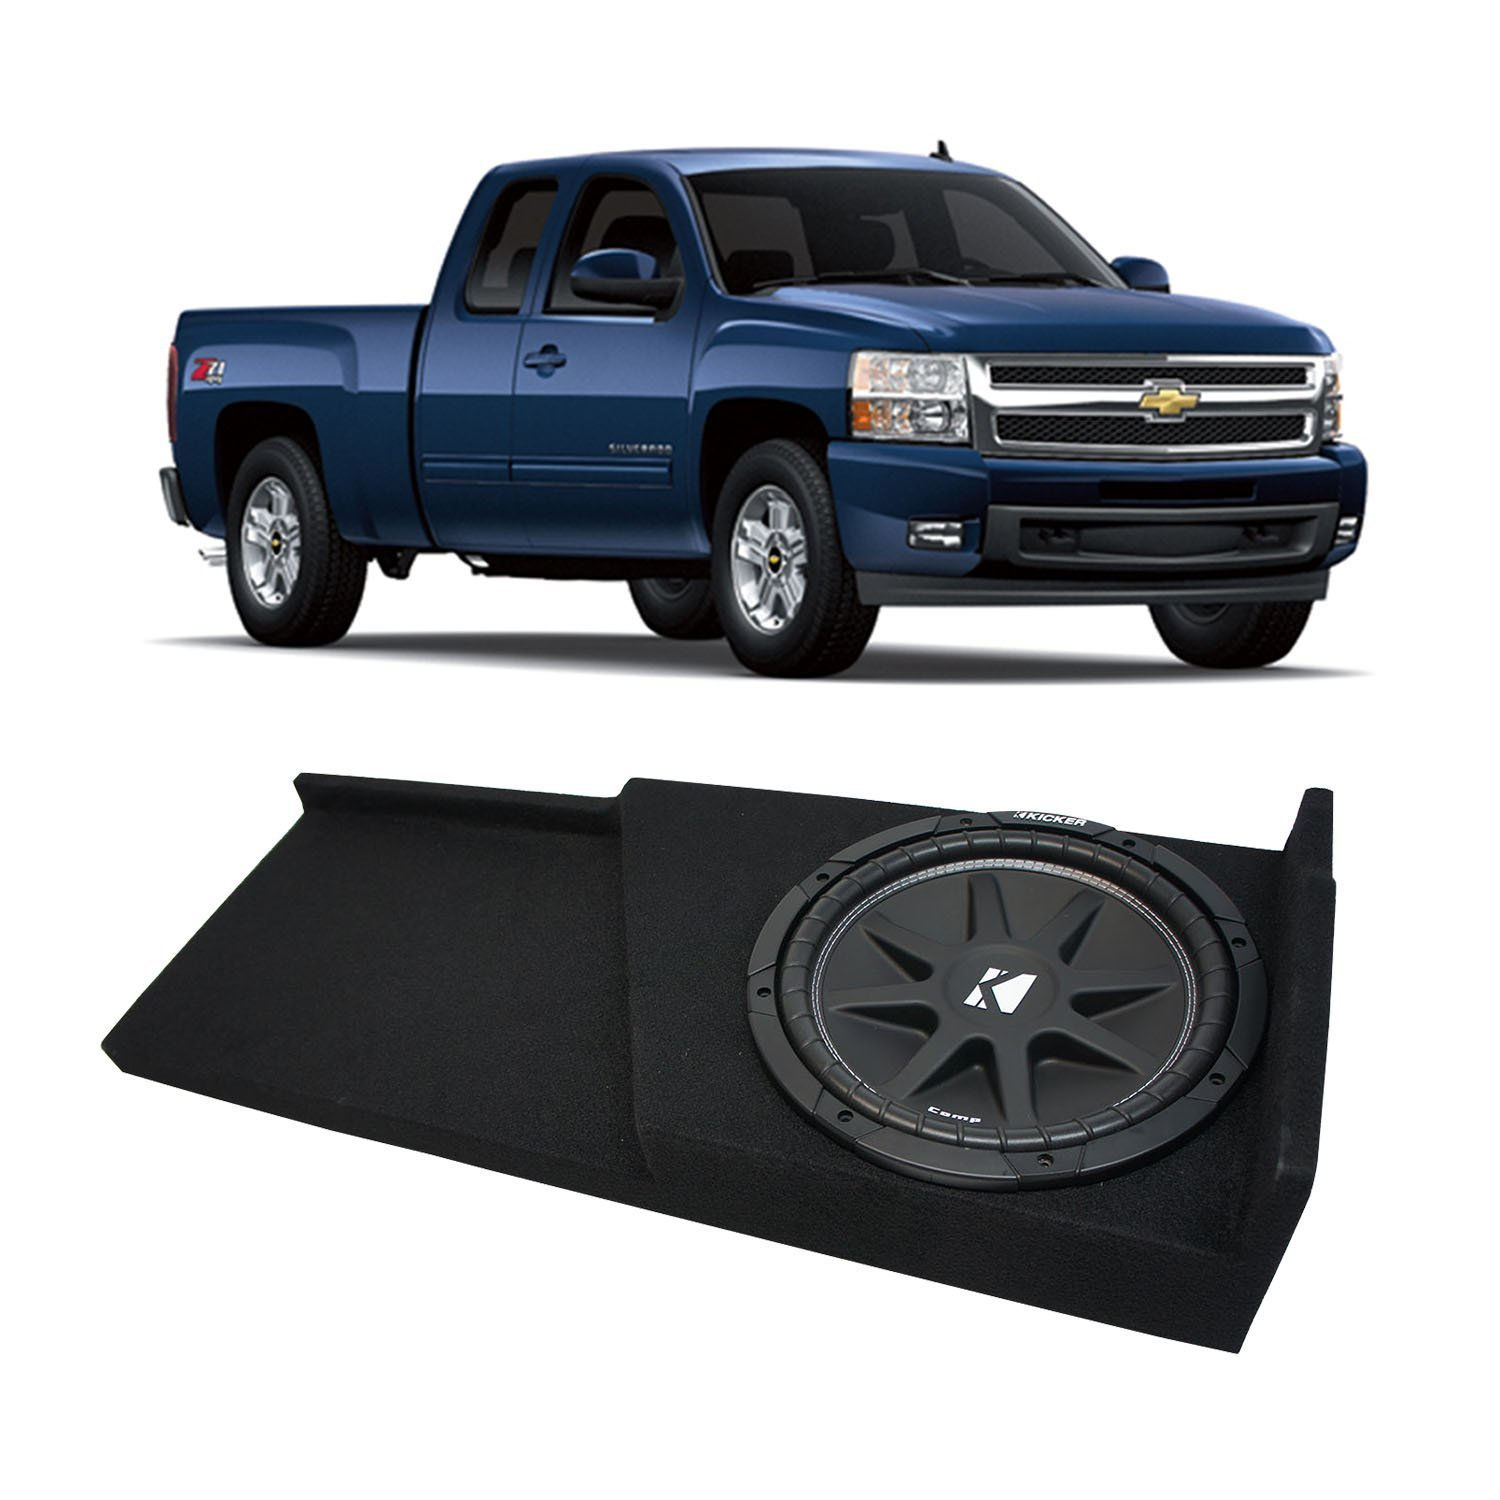 2007-2013 Chevy Silverado Ext Cab Truck Kicker Comp C10 Single 10 Sub Box Enclosure - Final 4 Ohm